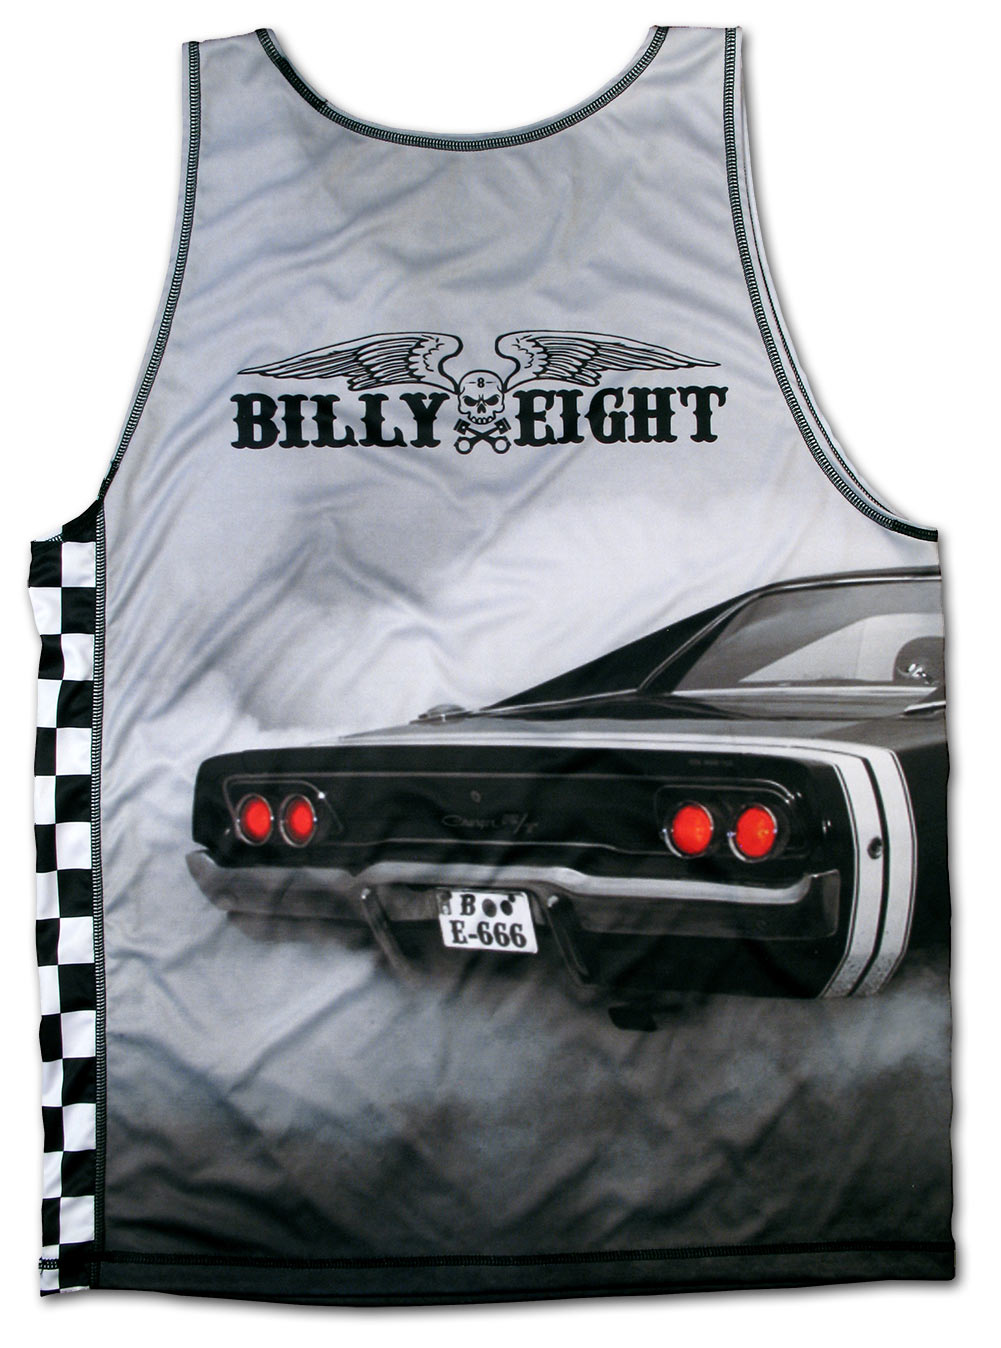 awesome_billy_eight_bad_ass_tank_top_s_m_l_xl_2_xl_tanks_and_camis_6.jpg